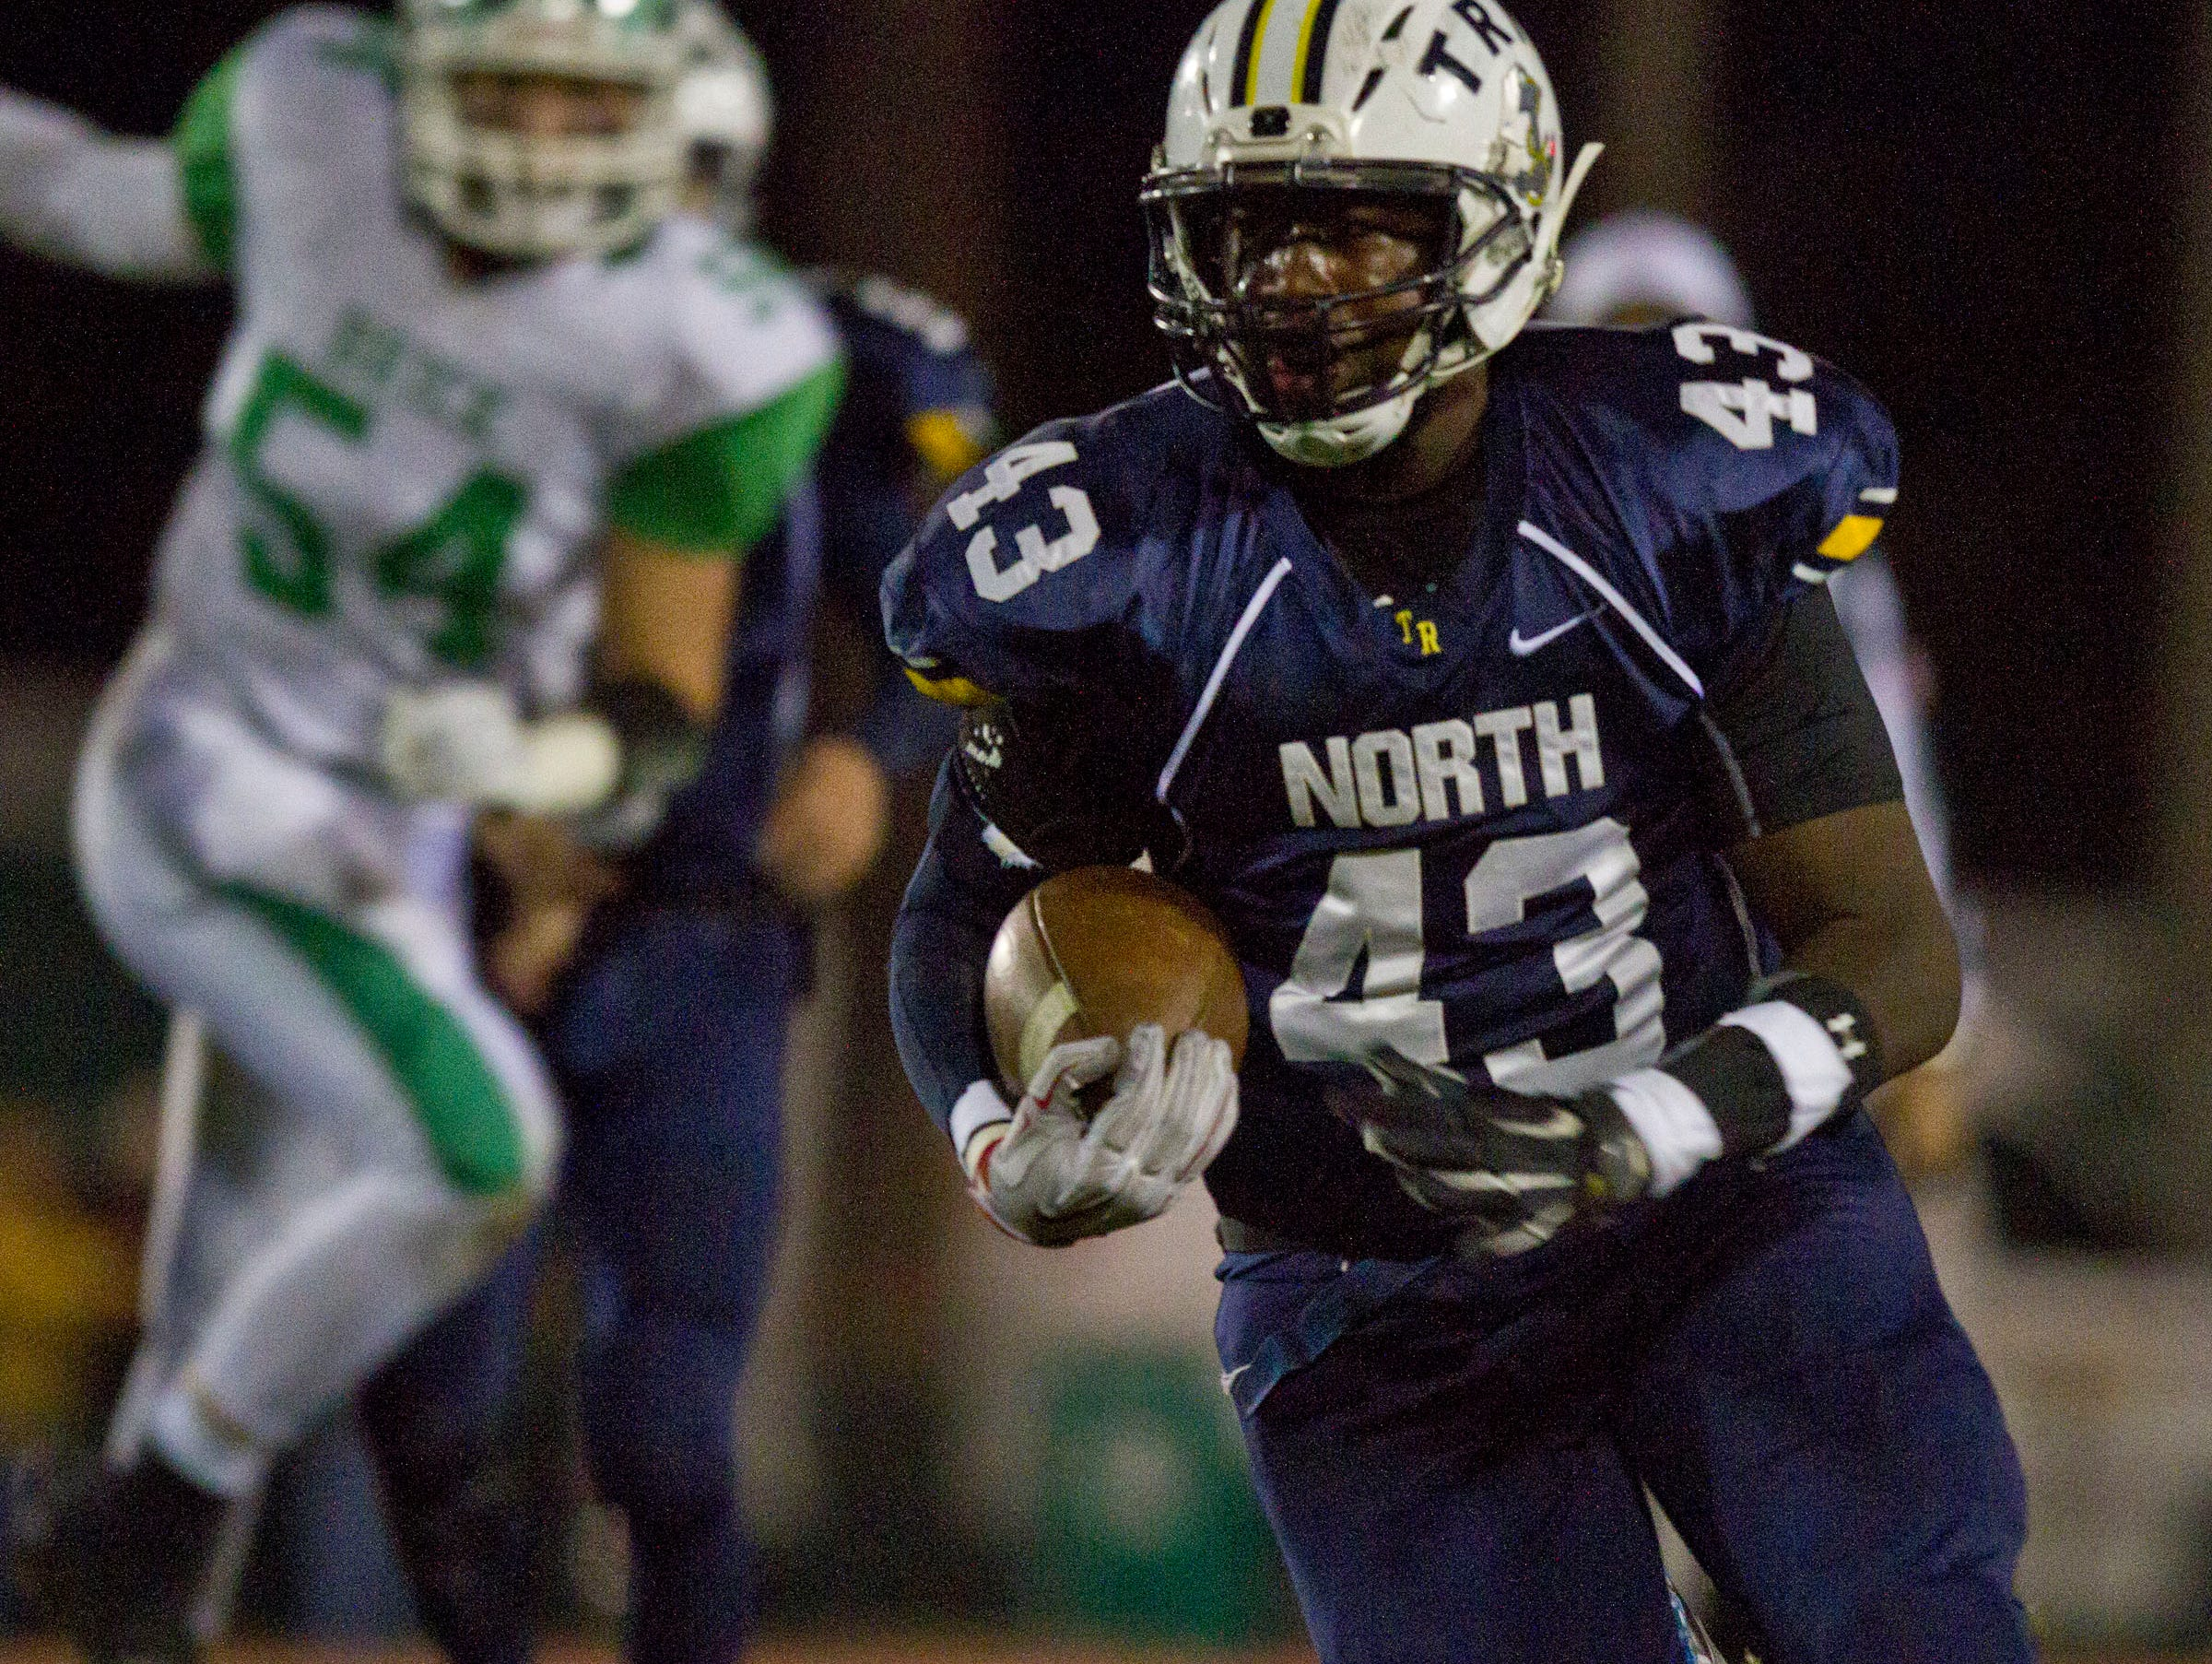 Toms River North's Daryn Blackwell scores a touchdown. Toms River North vs Brick football. Brick, NJ Friday, October 30, 2015 @dhoodhood